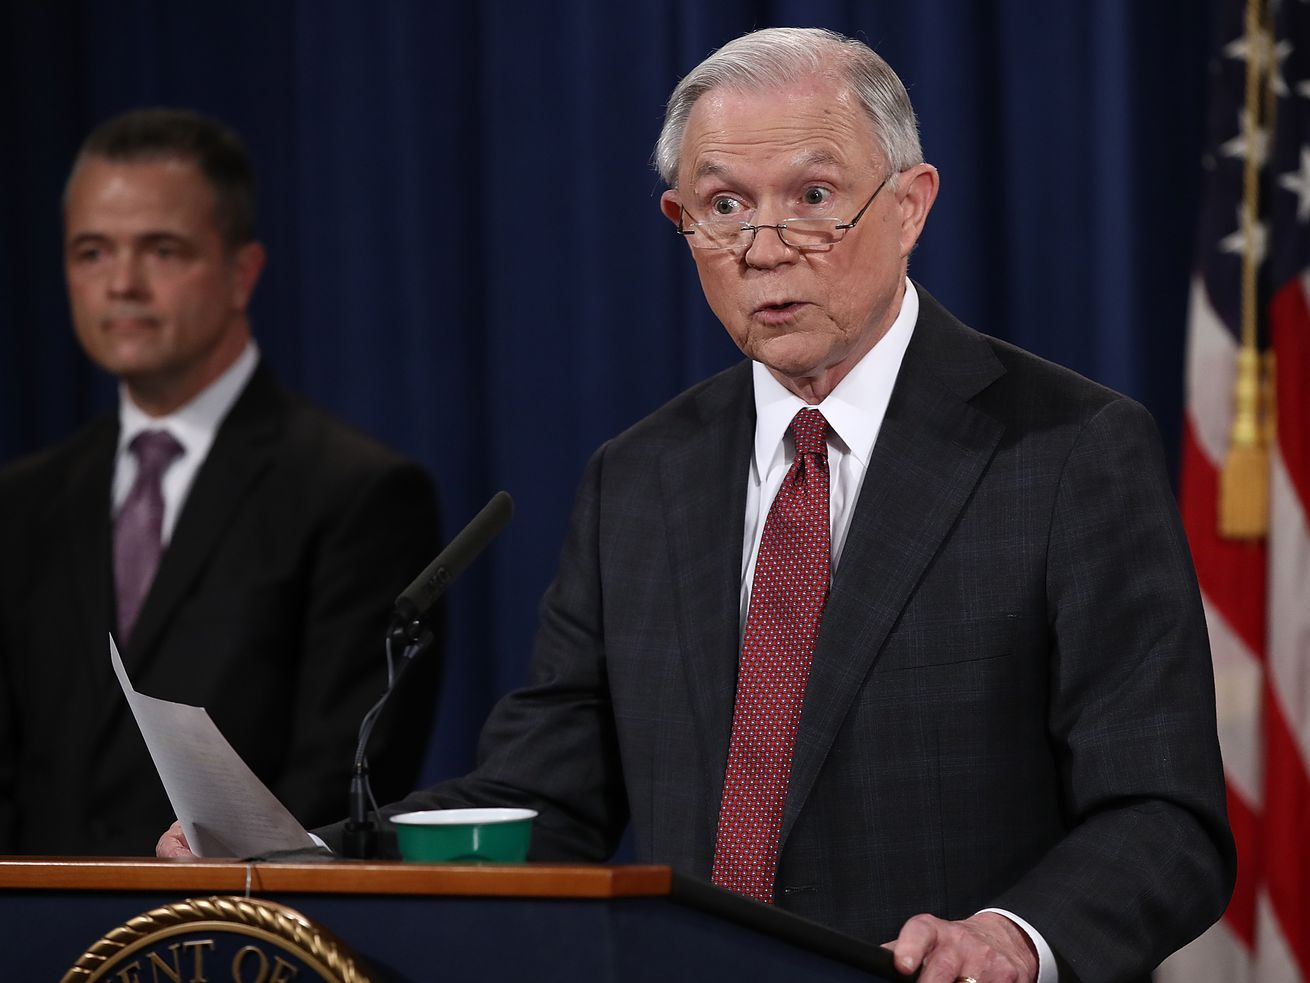 Attorney General Jeff Sessions answers questions during a press conference at the Department of Justice.